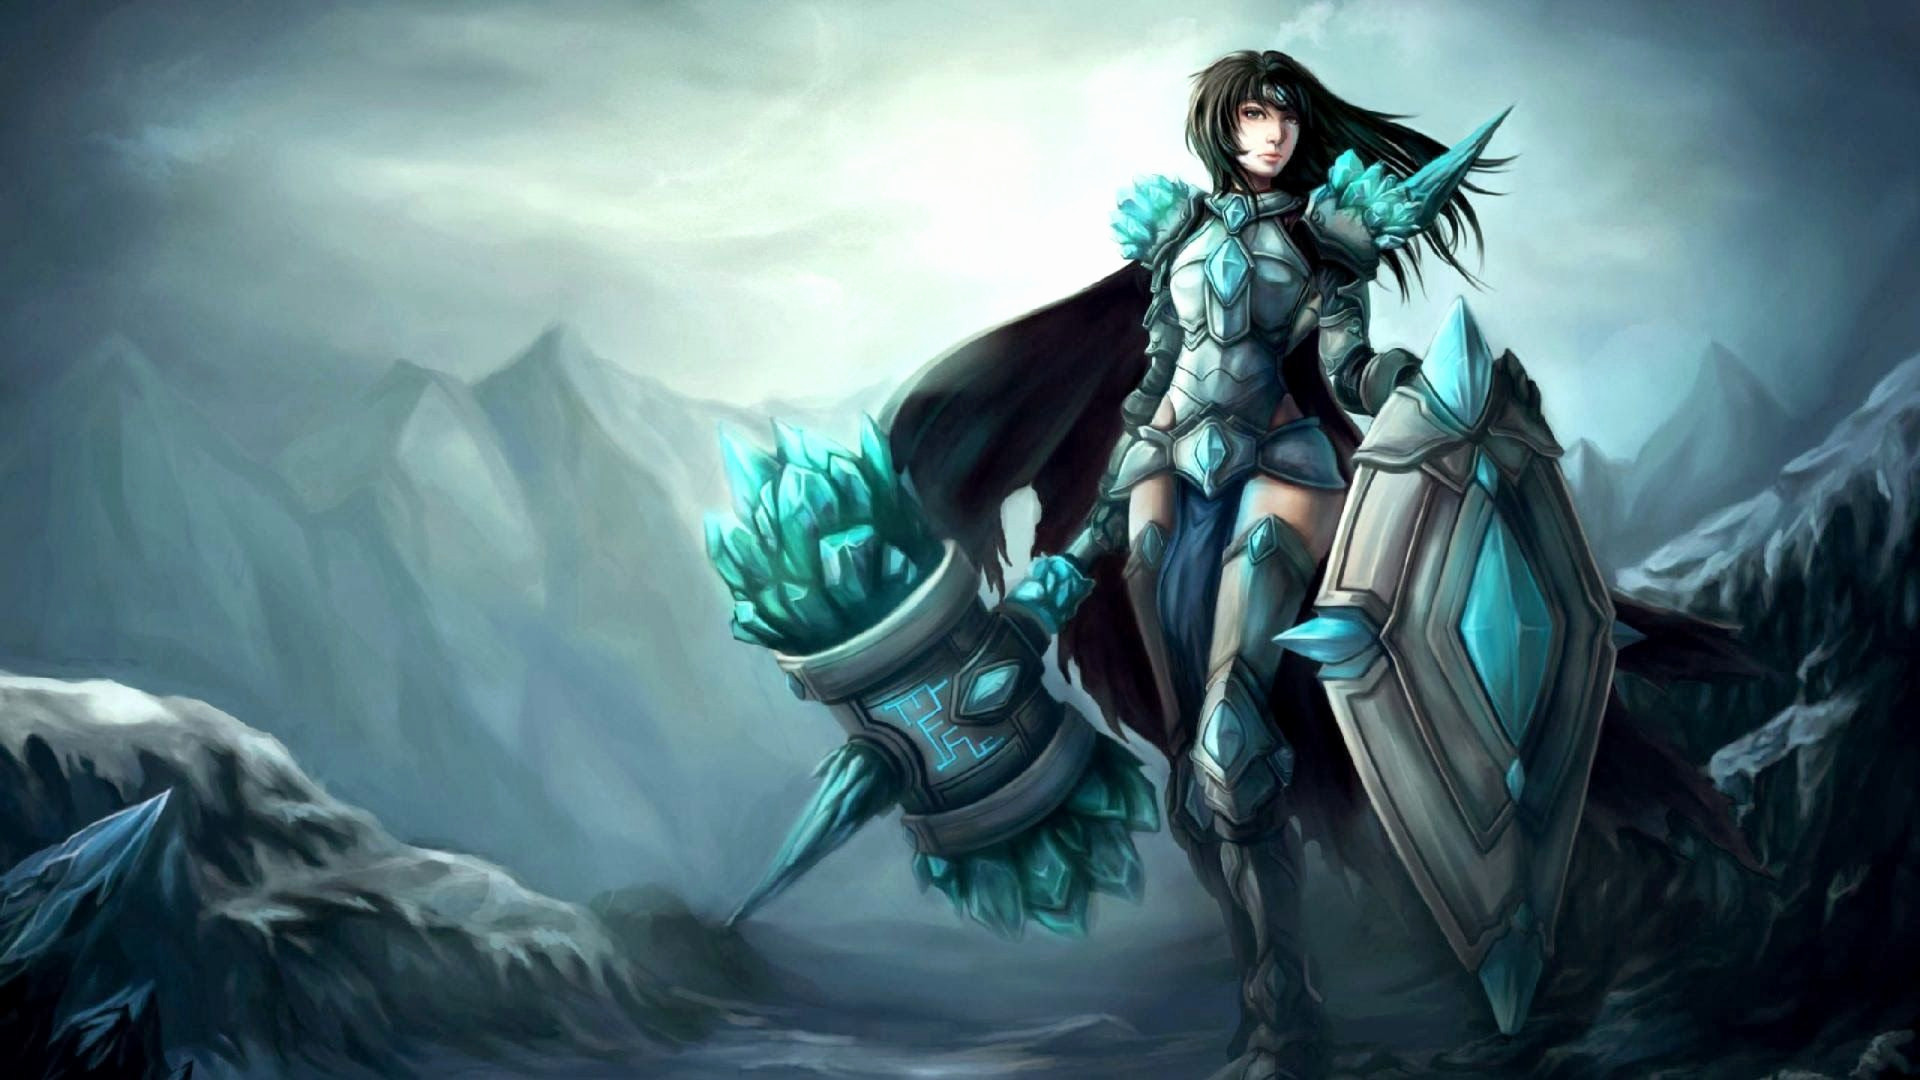 Res: 1920x1080,  Awesome Shen Wallpapers Art Hd League Of Legends Wallpaper